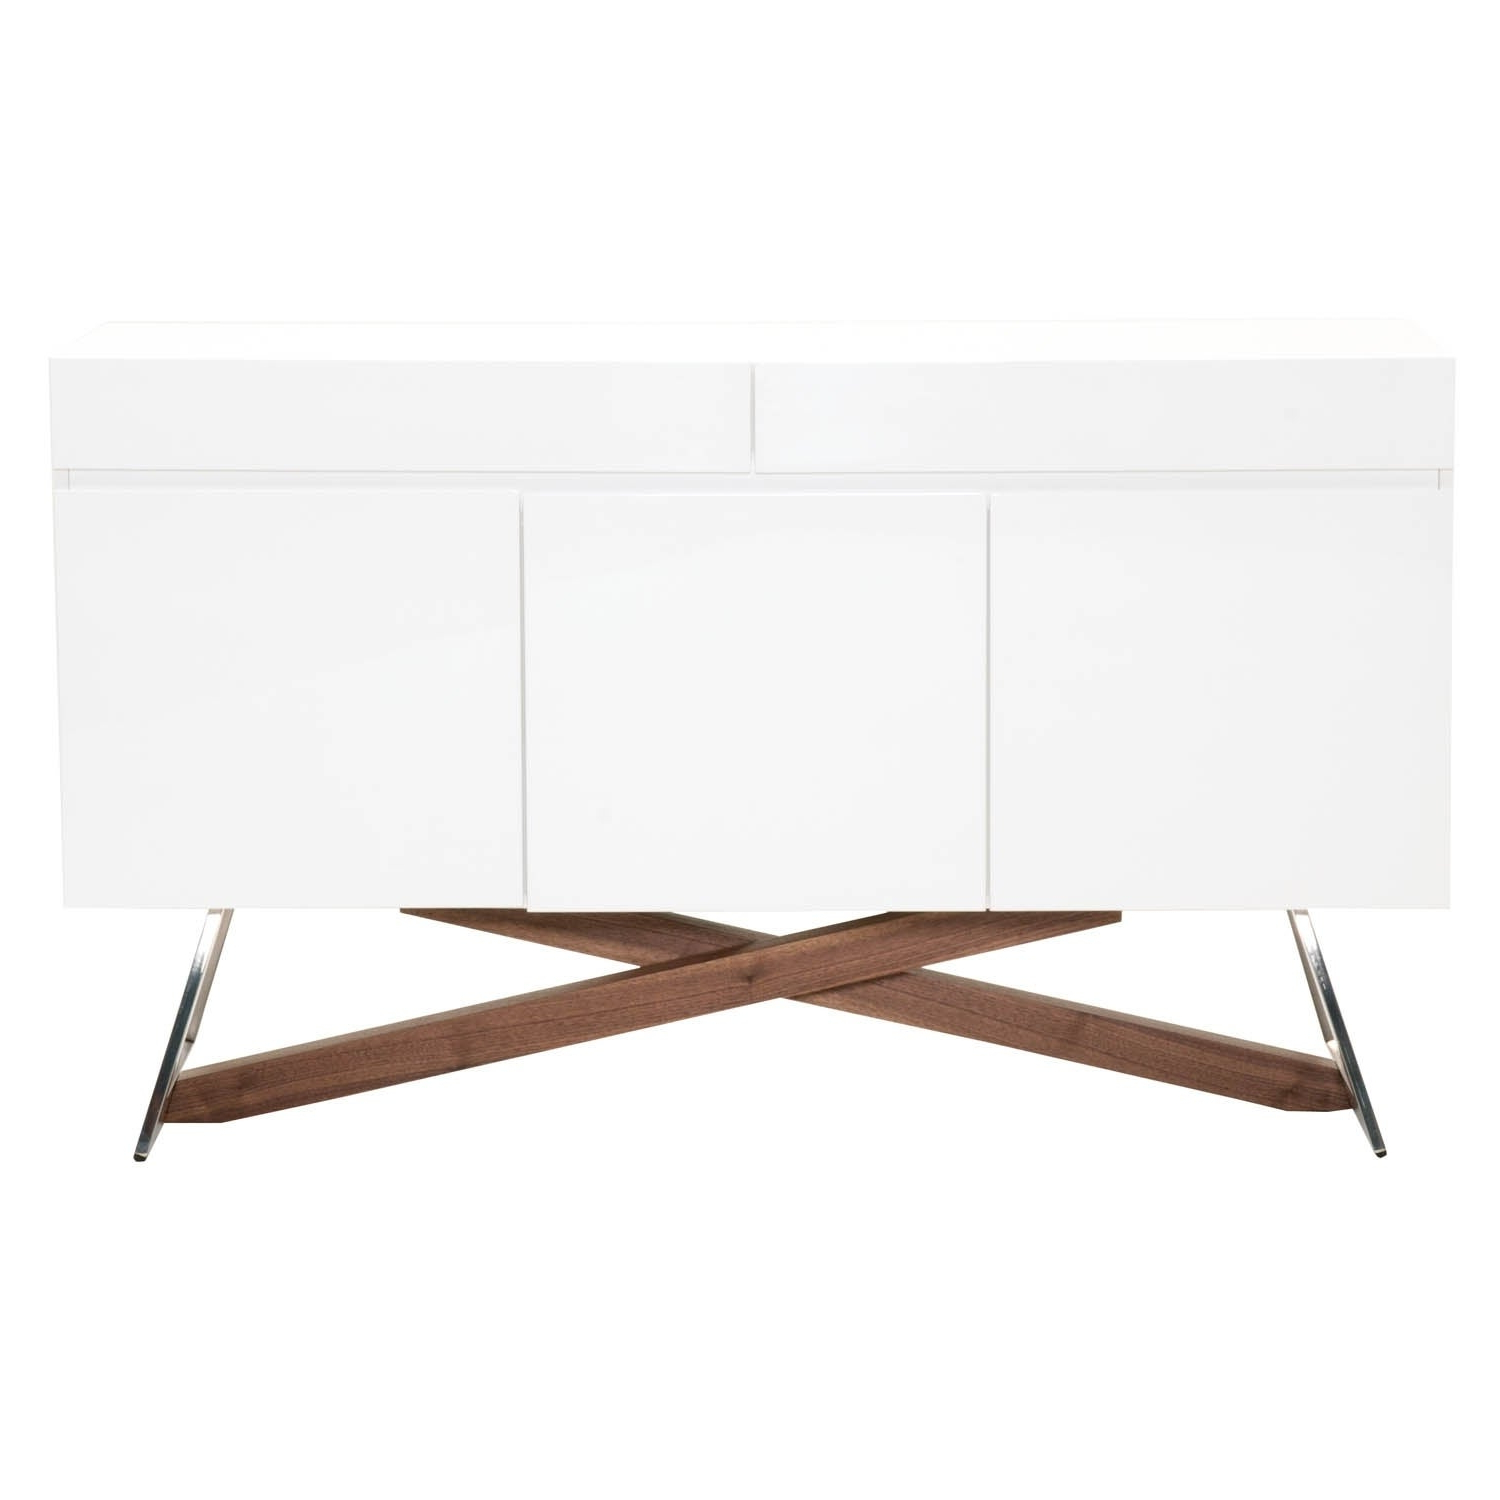 Details About Mid Century Modern Buffet With Wooden Base Glossy White And  White Regarding Mid Century White Buffets (View 4 of 20)